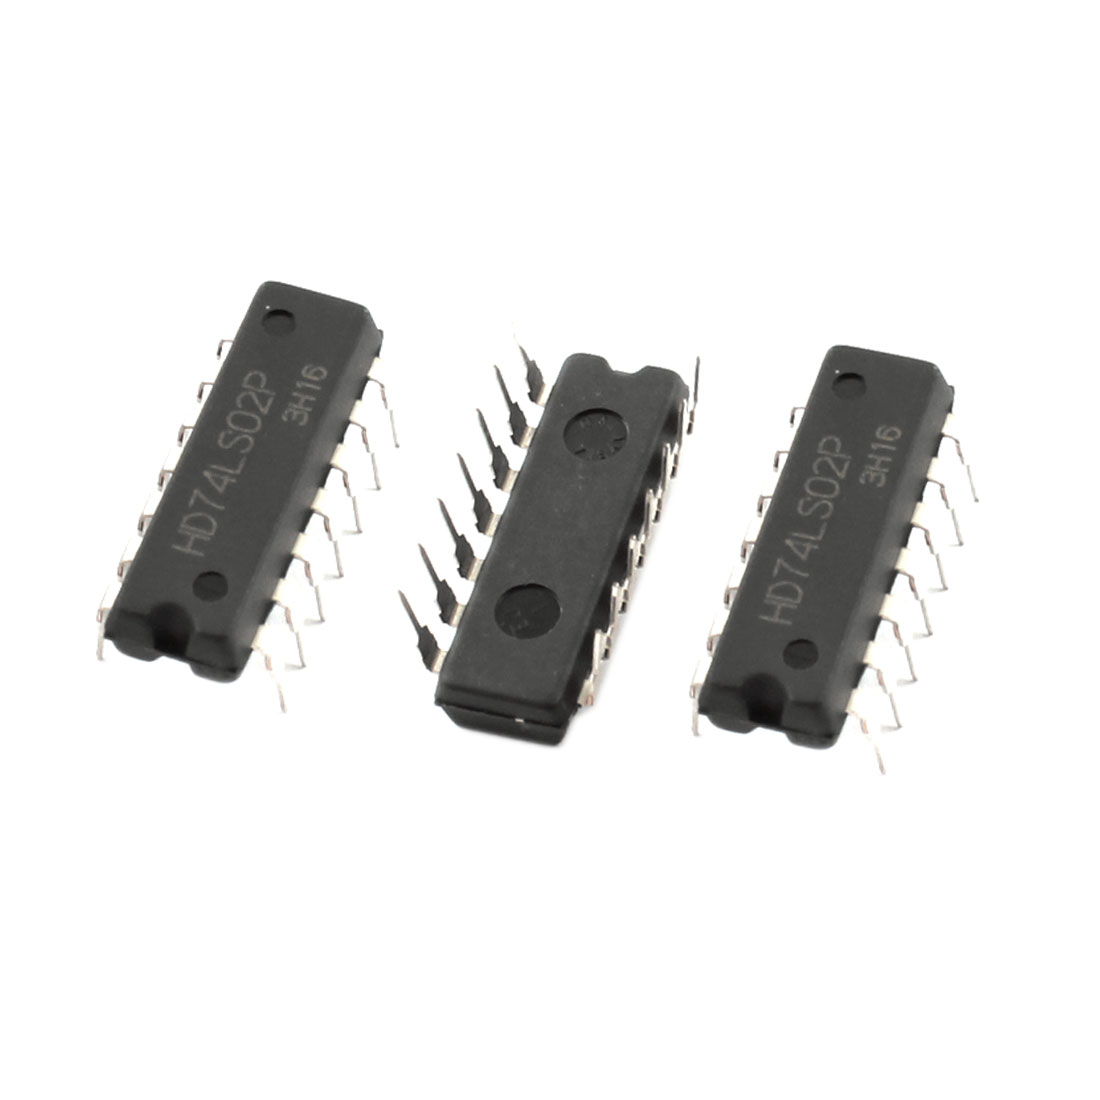 HD74LS02P Quadruple 2 Input DIP-14 Package Positive Nor Gate 3pcs